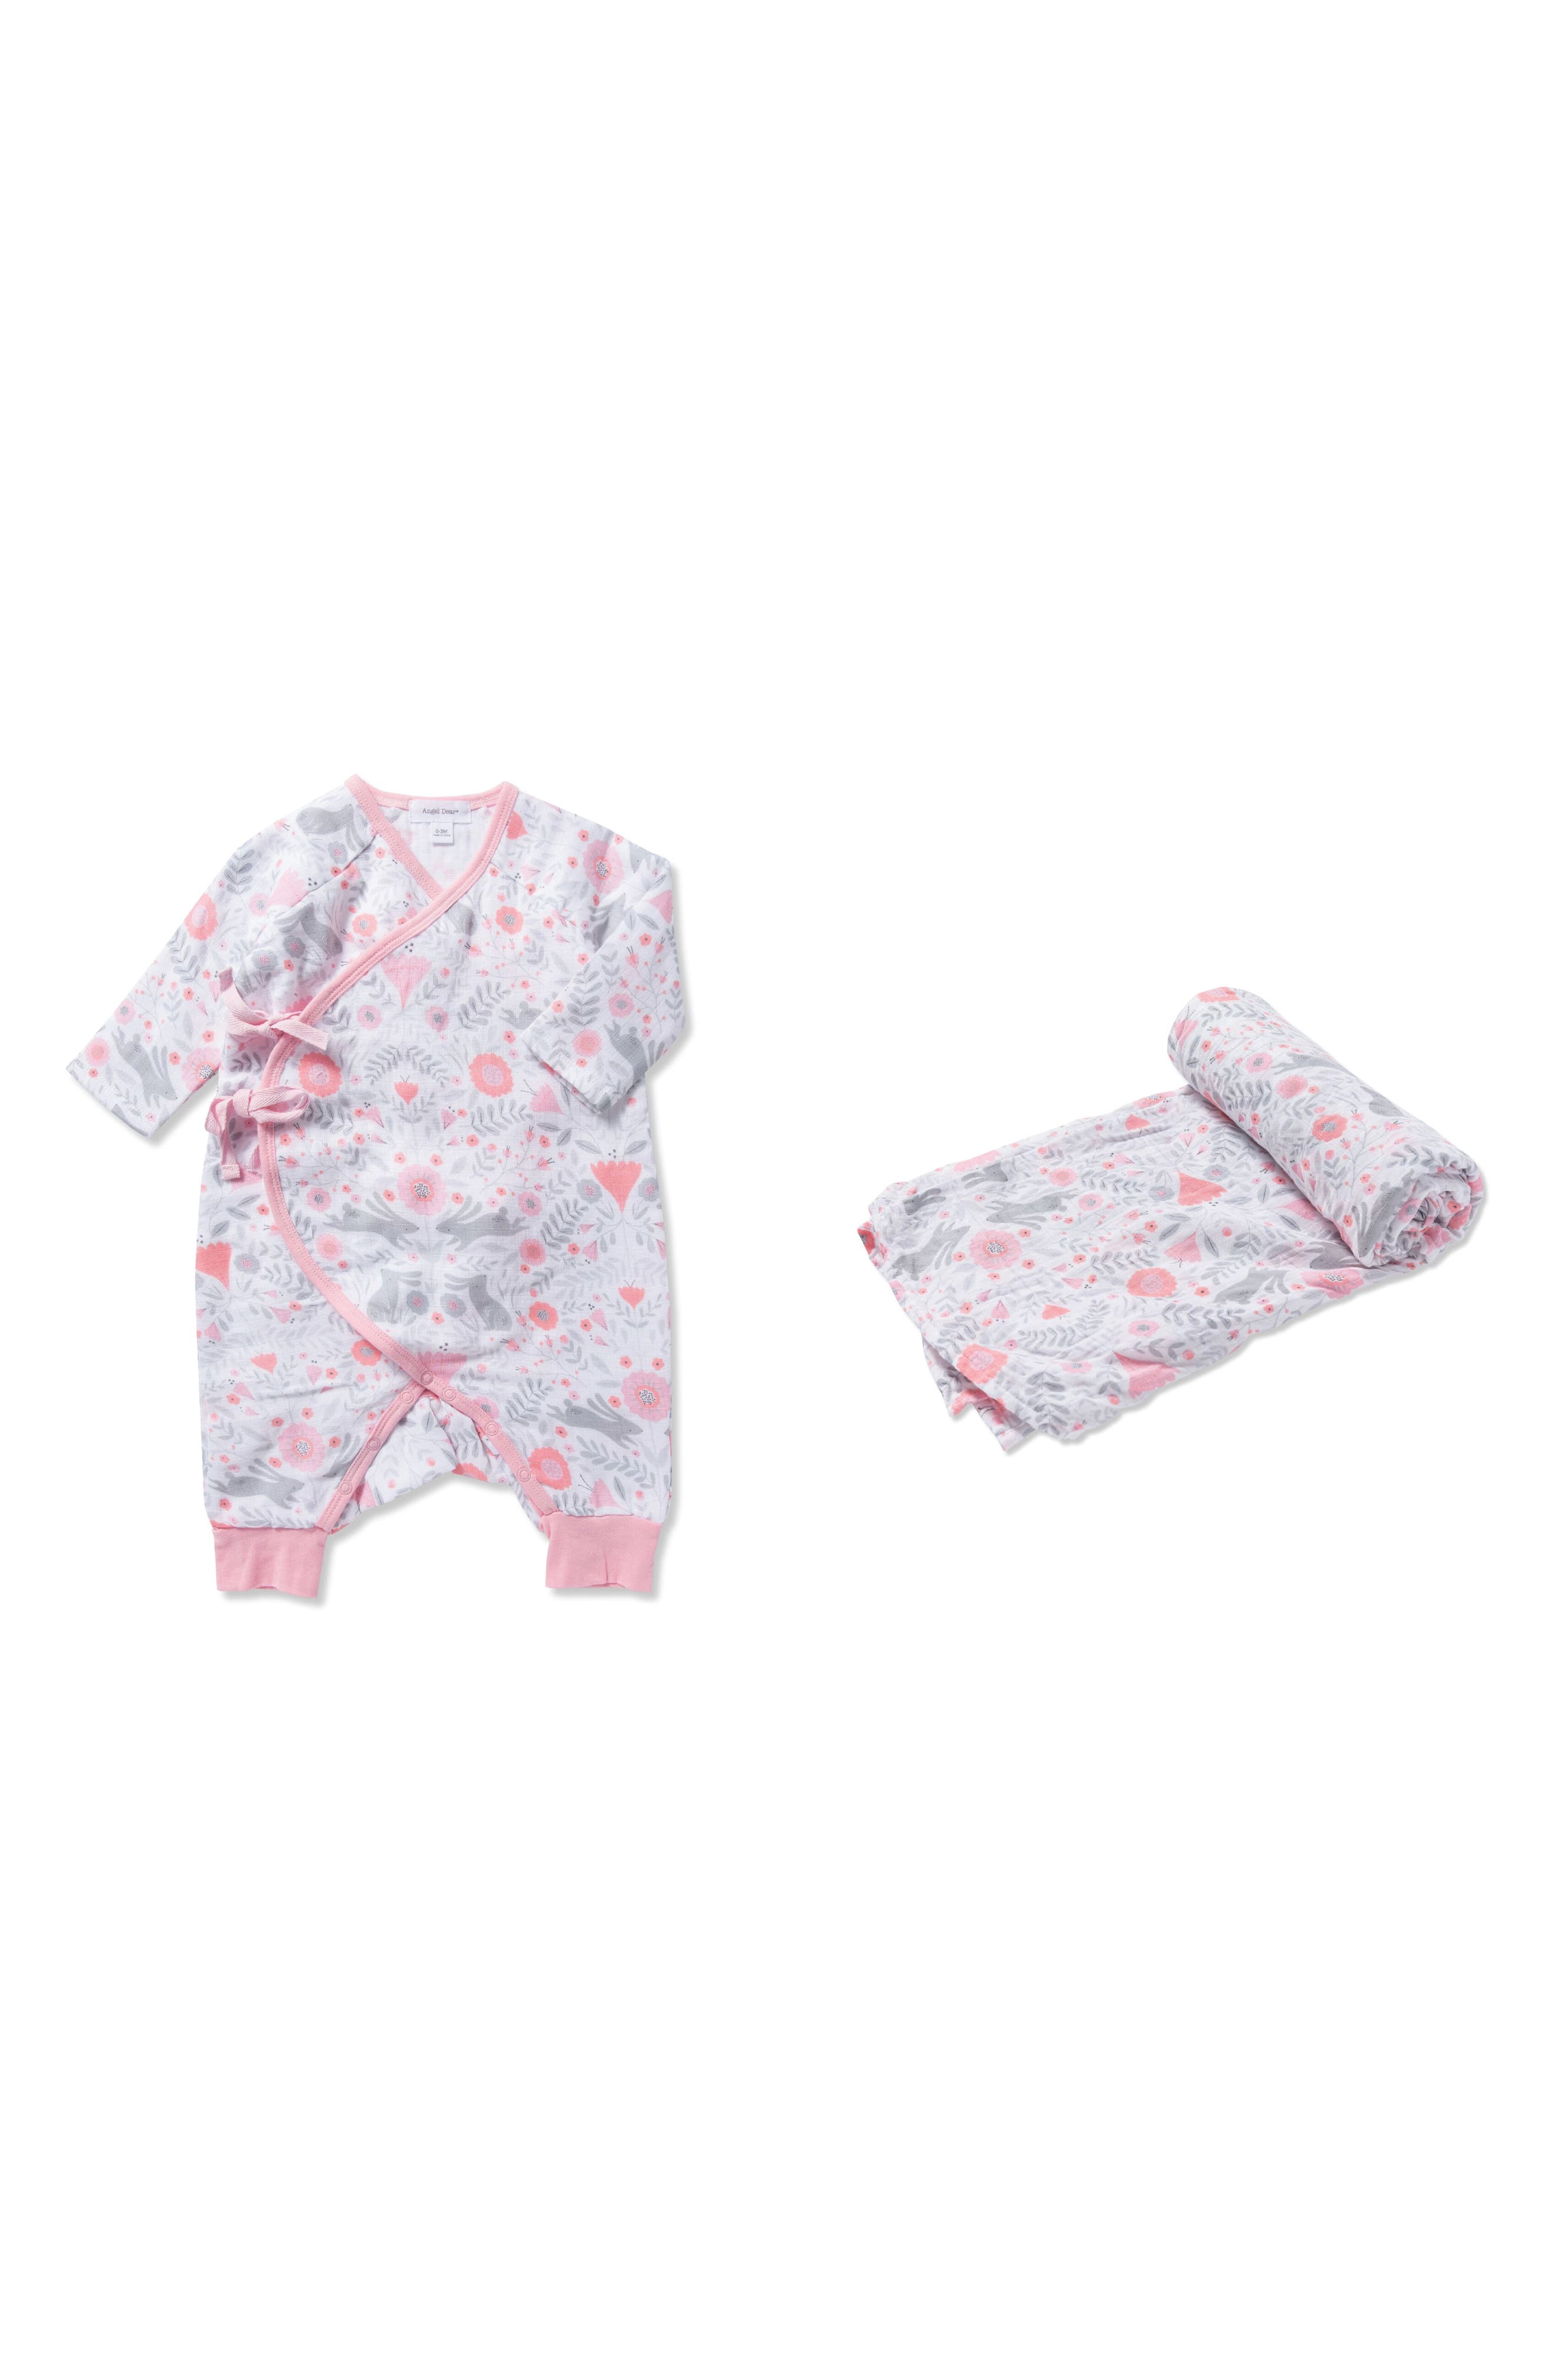 Bunny Print Romper & Swaddling Blanket Set,                         Main,                         color, 686